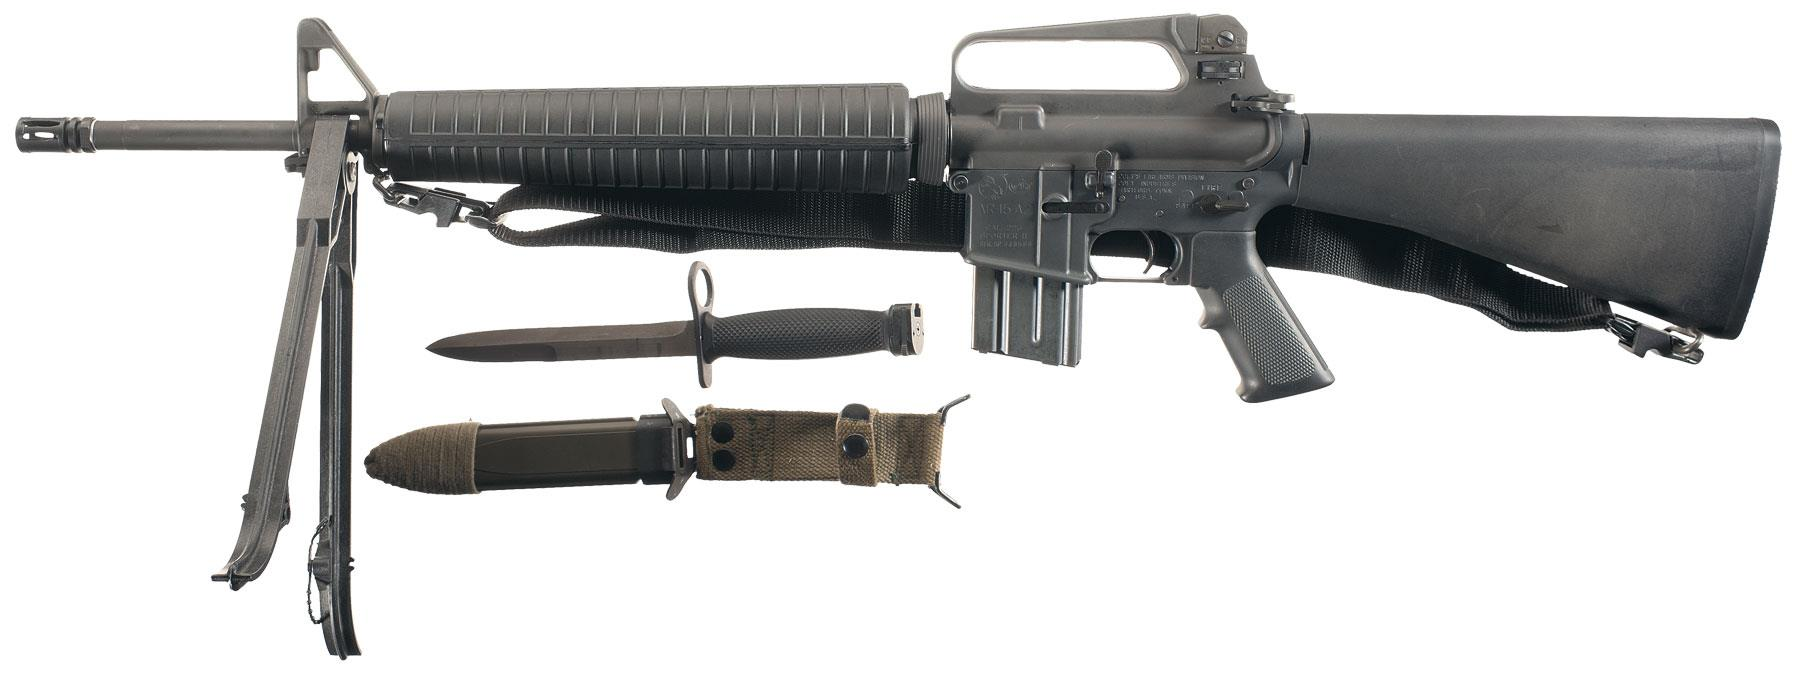 colt ar15 a2 serial numbers